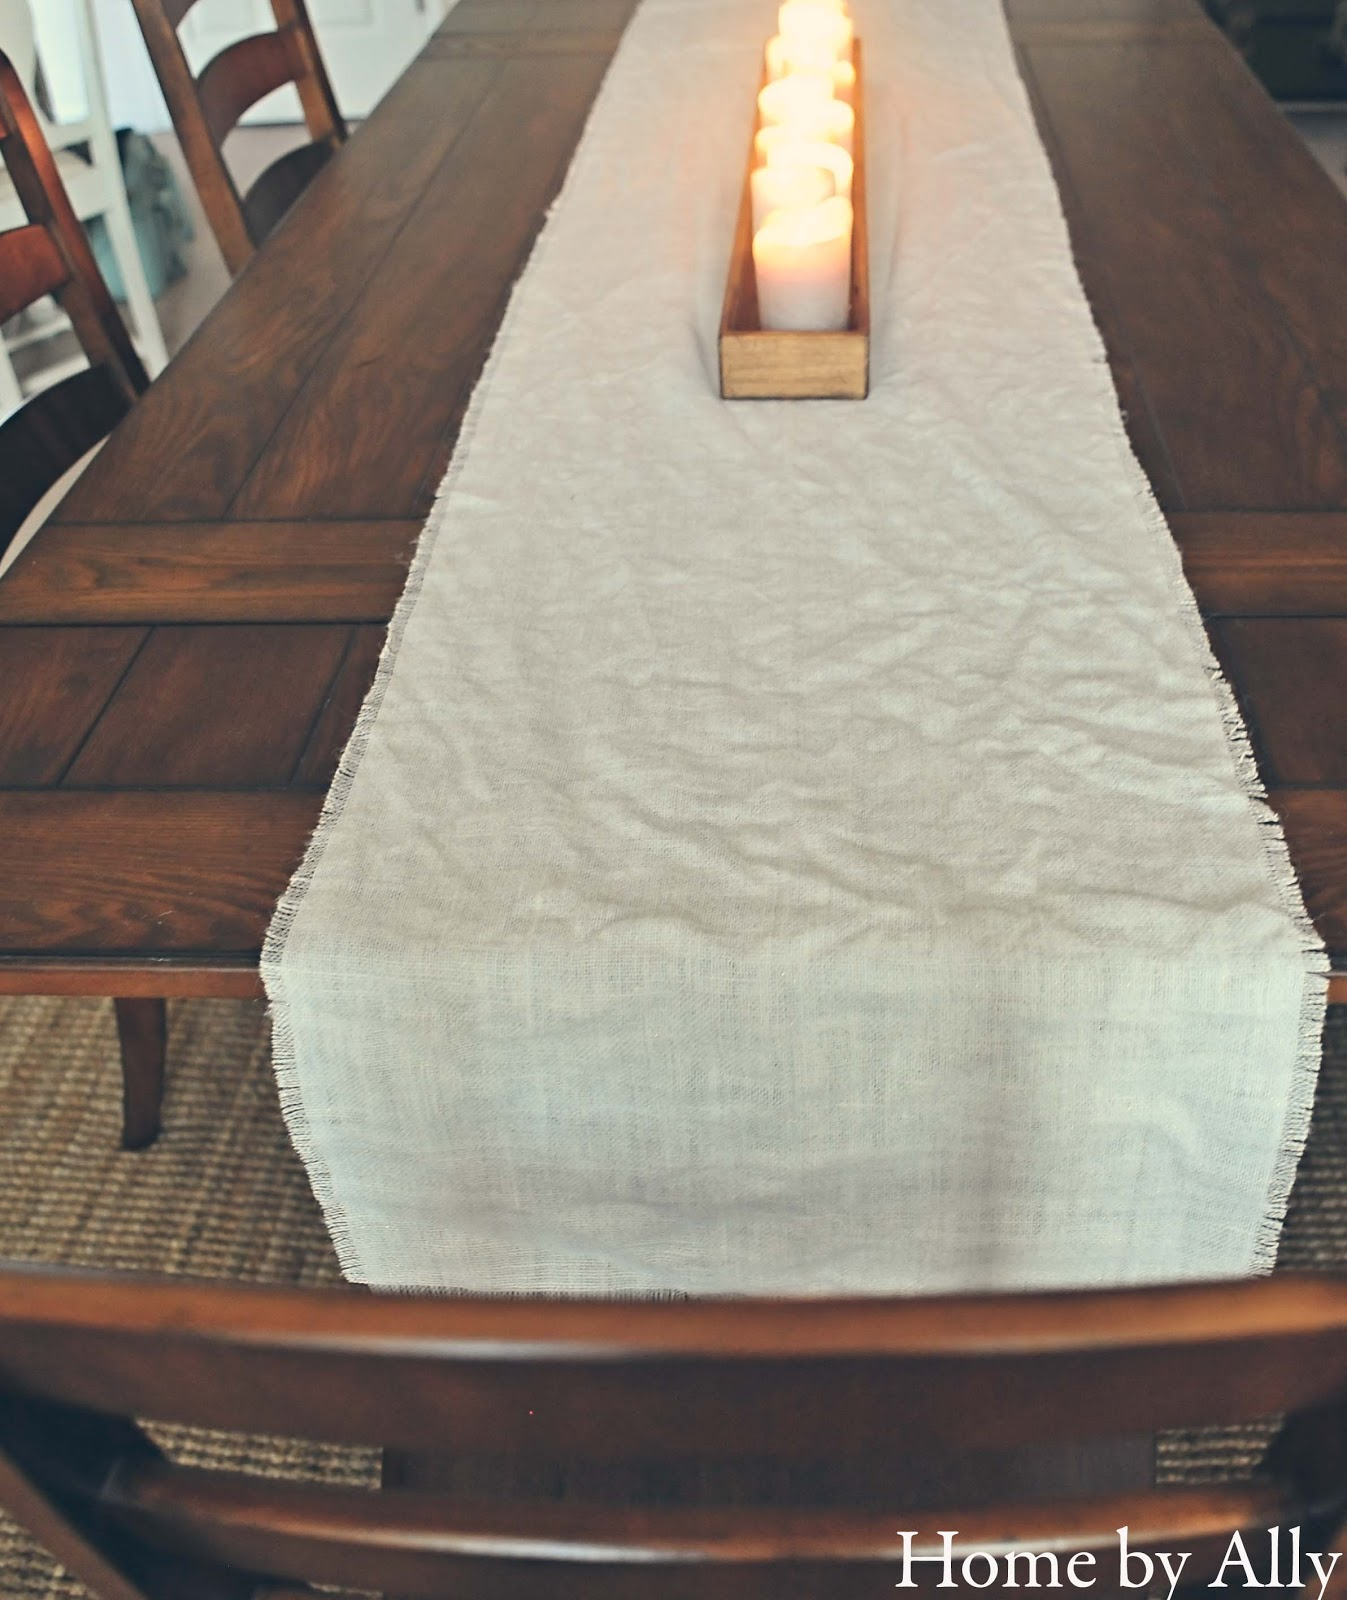 Diy no sew burlap table runner home by ally for Easy diy table runner